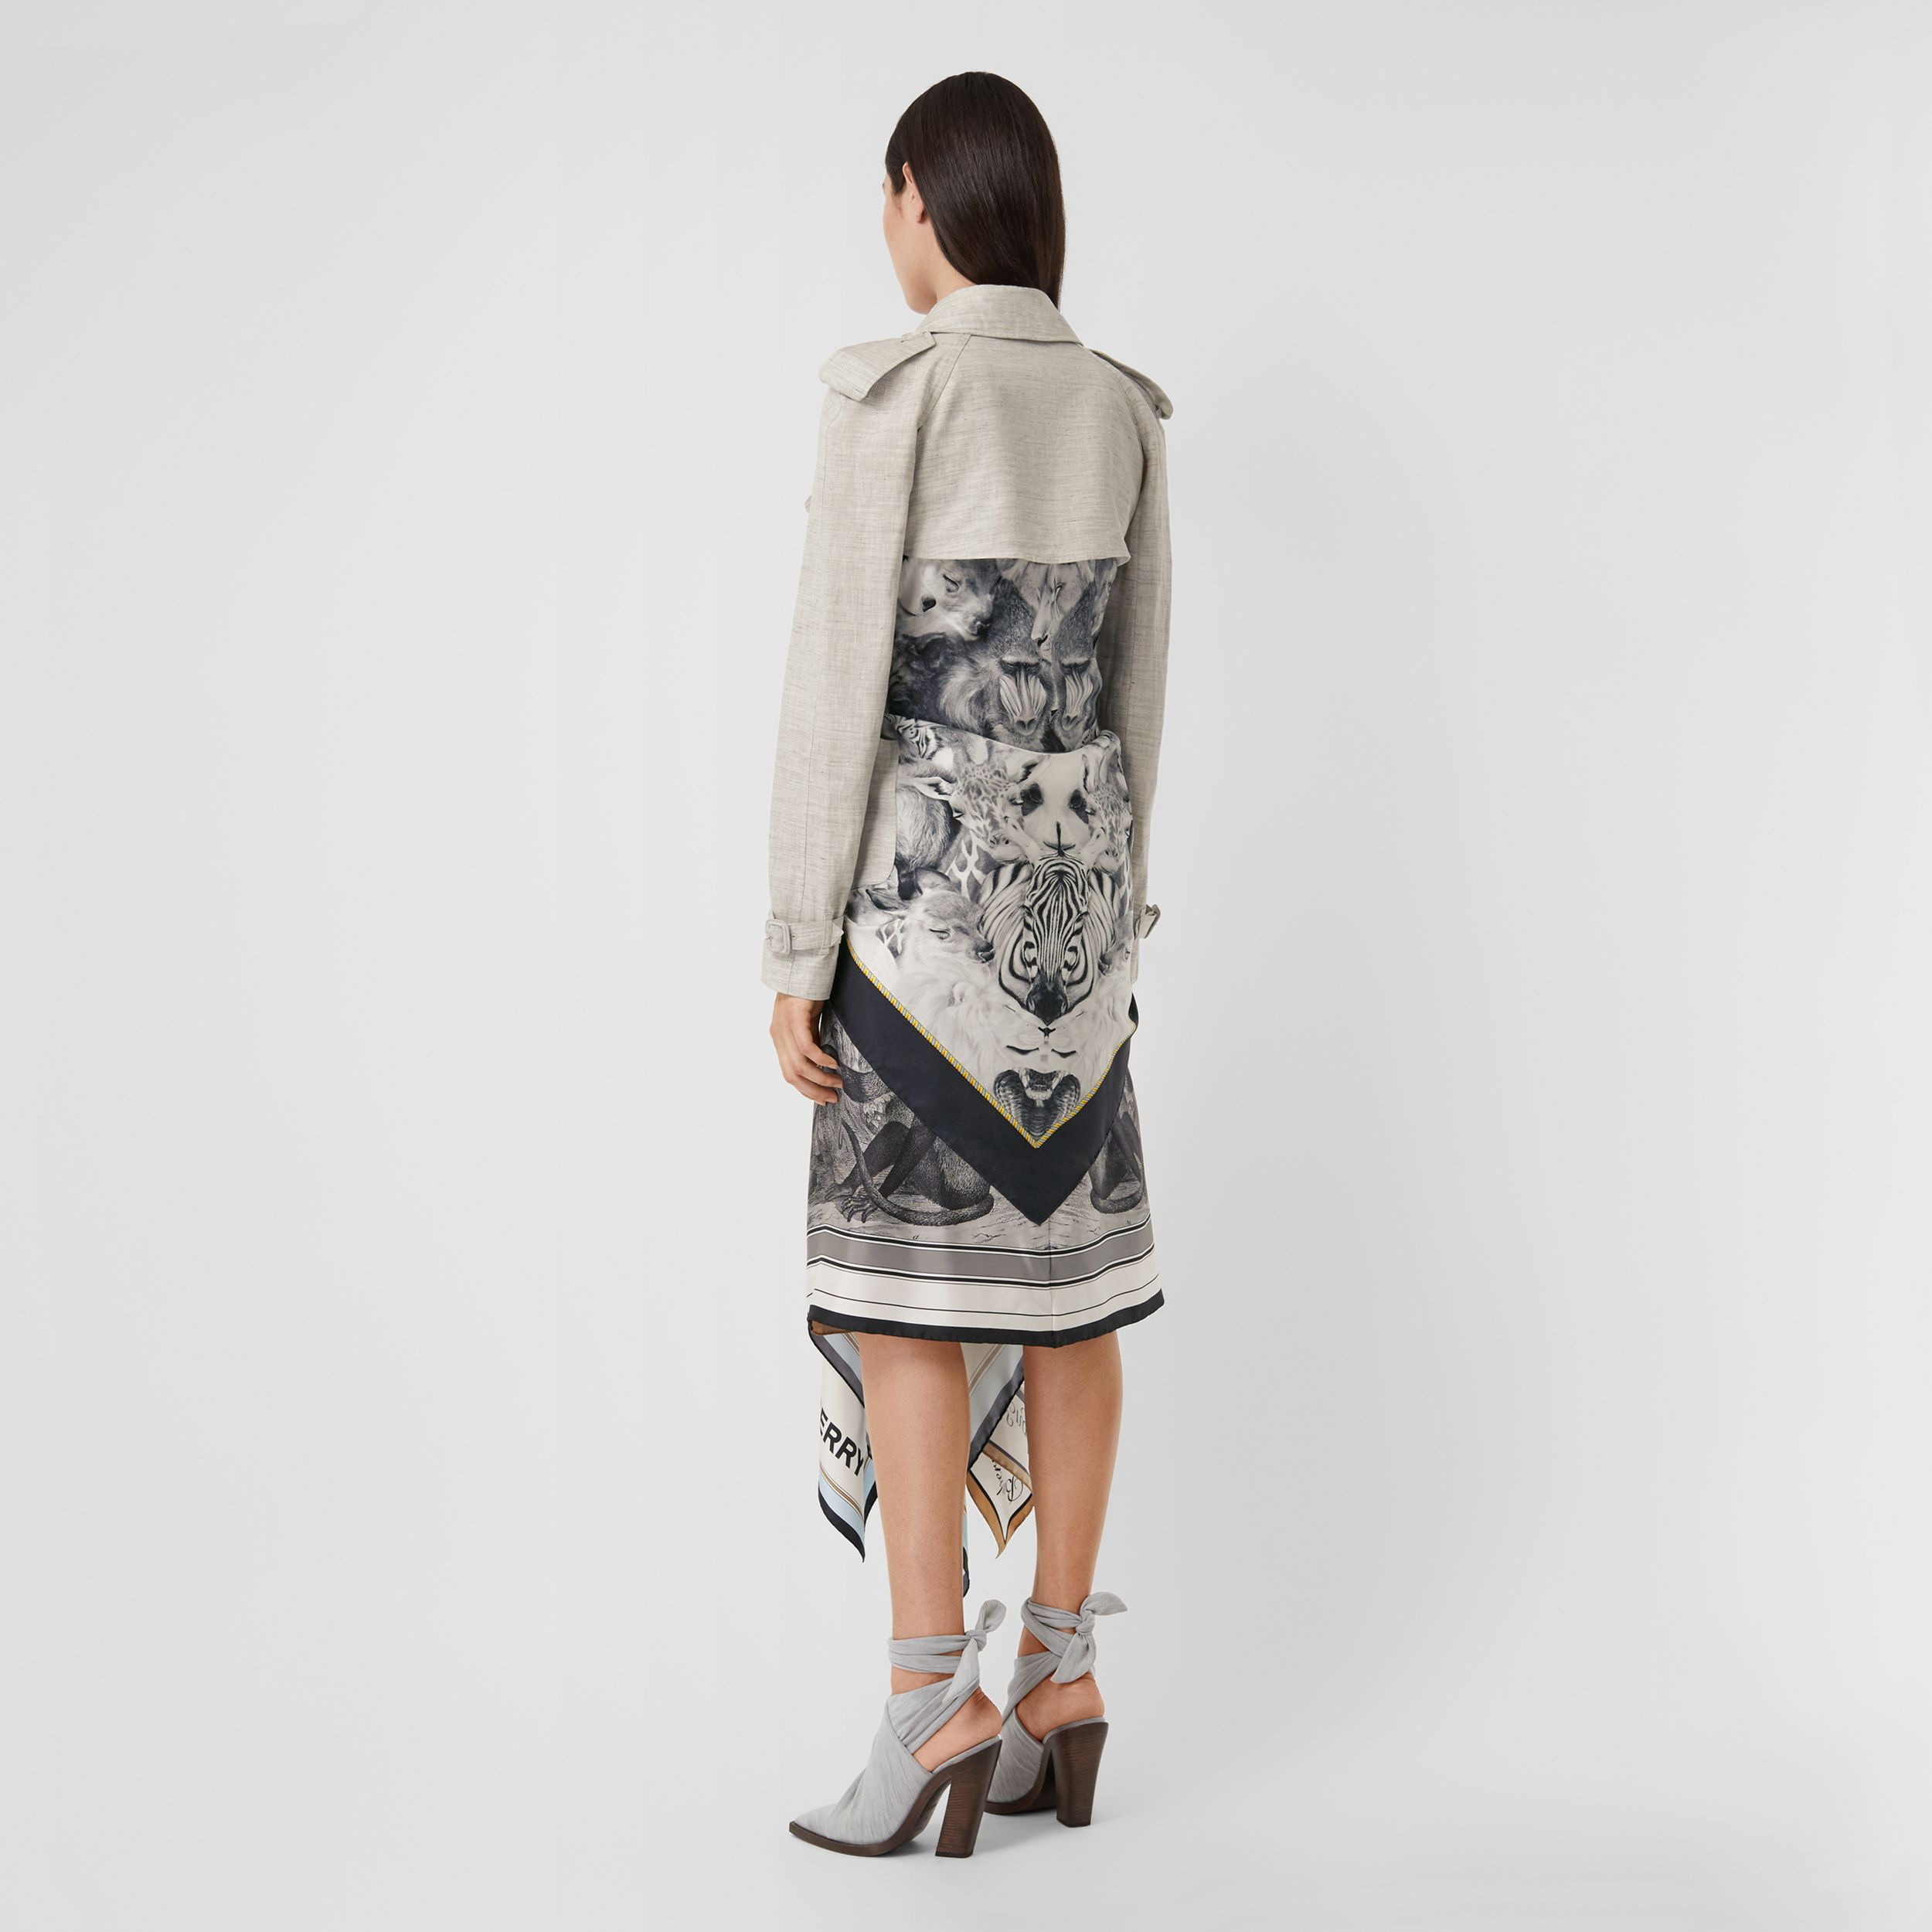 Animalia Print Linen Trench Dress in Grey Melange - Women | Burberry Hong Kong S.A.R. - 3